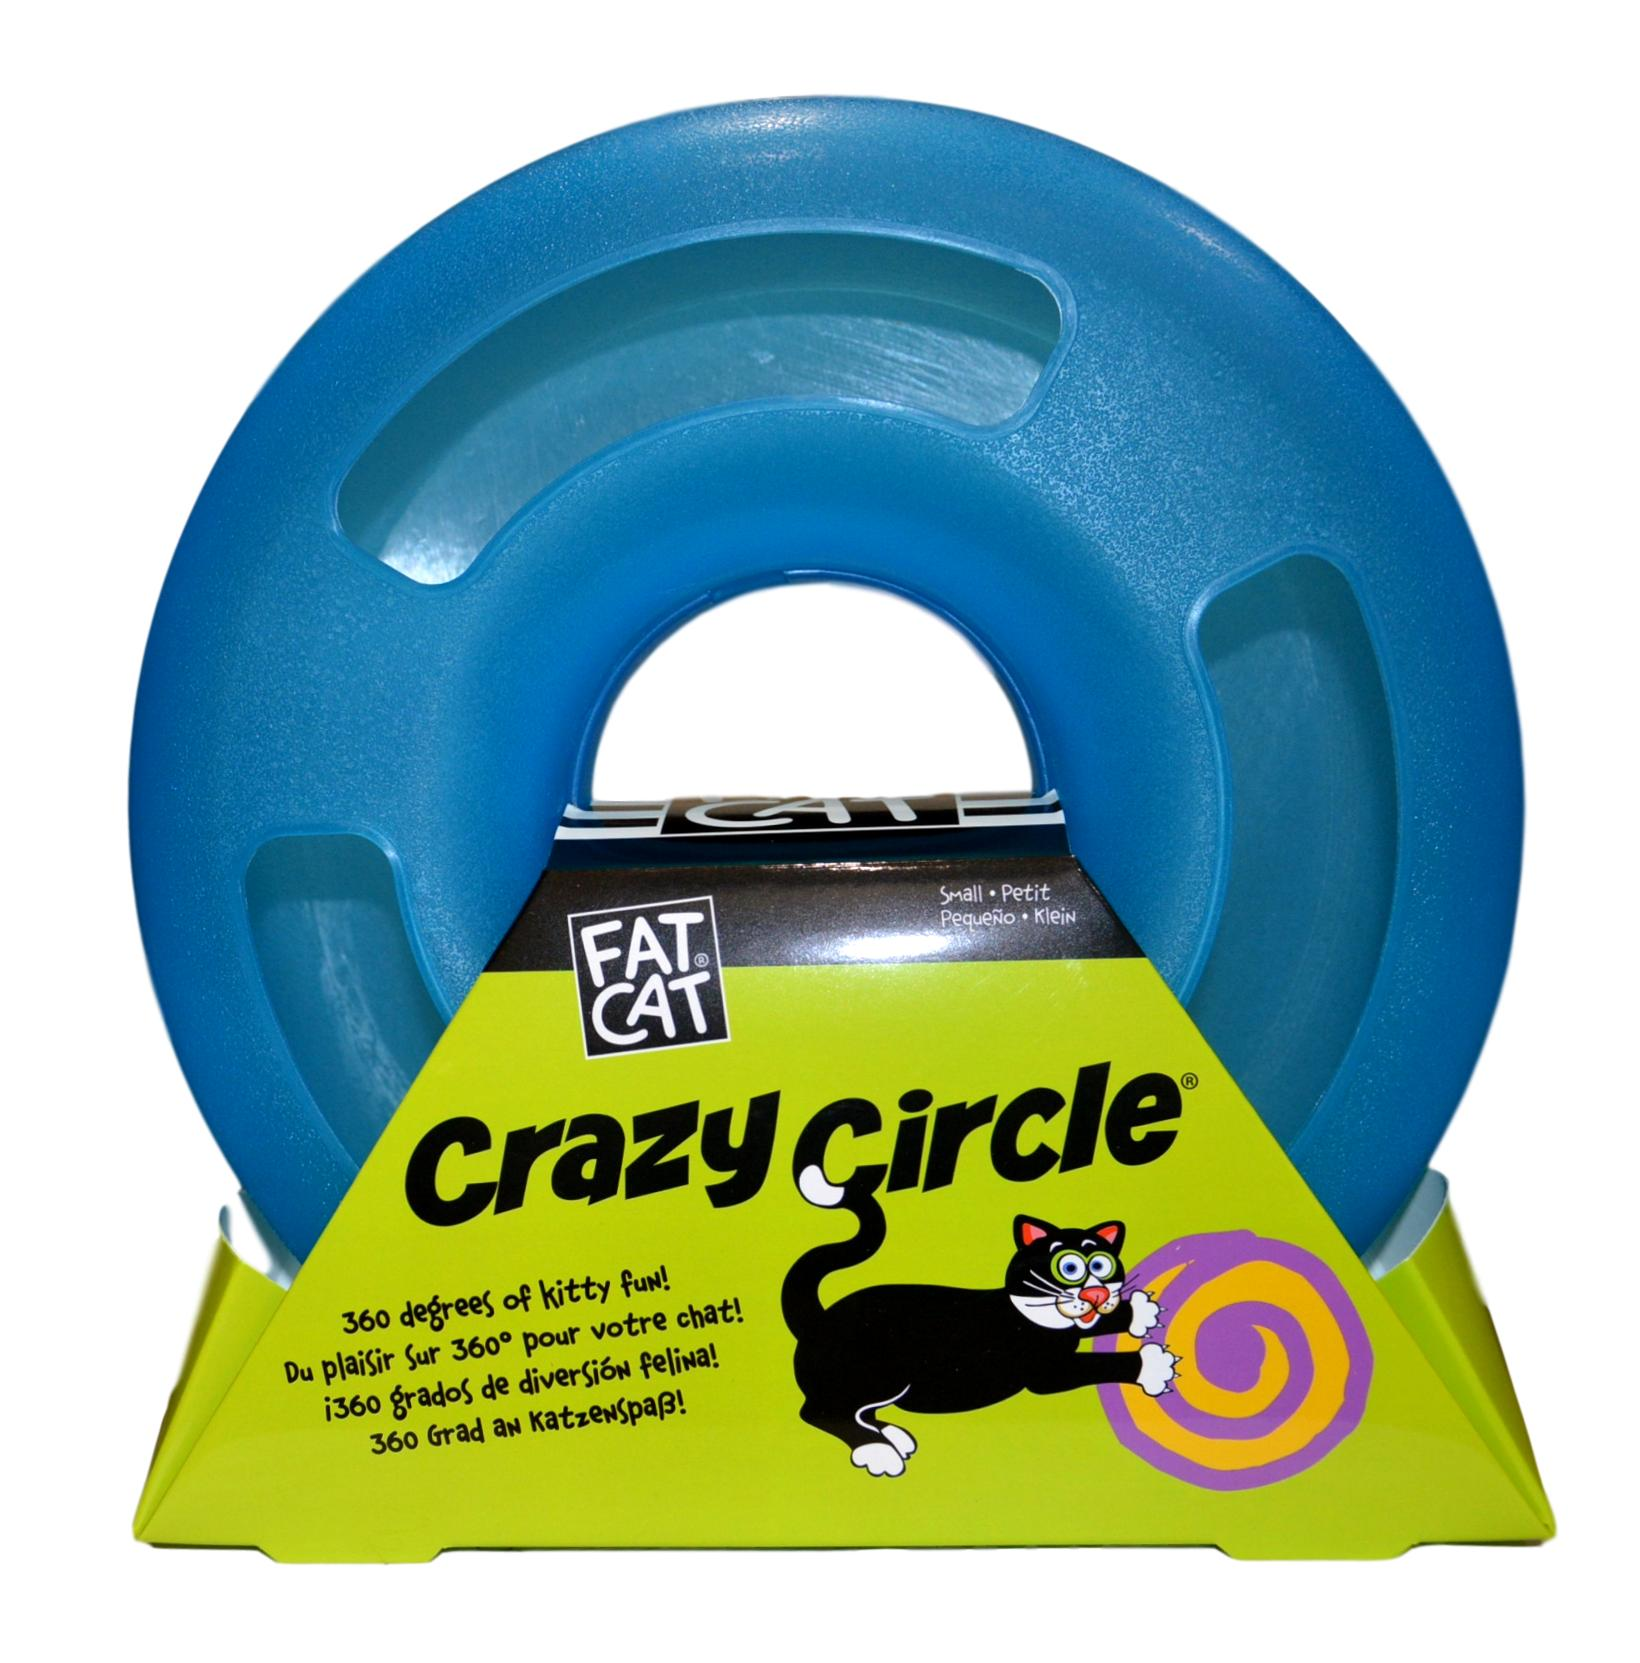 Fatcat Crazy Circle